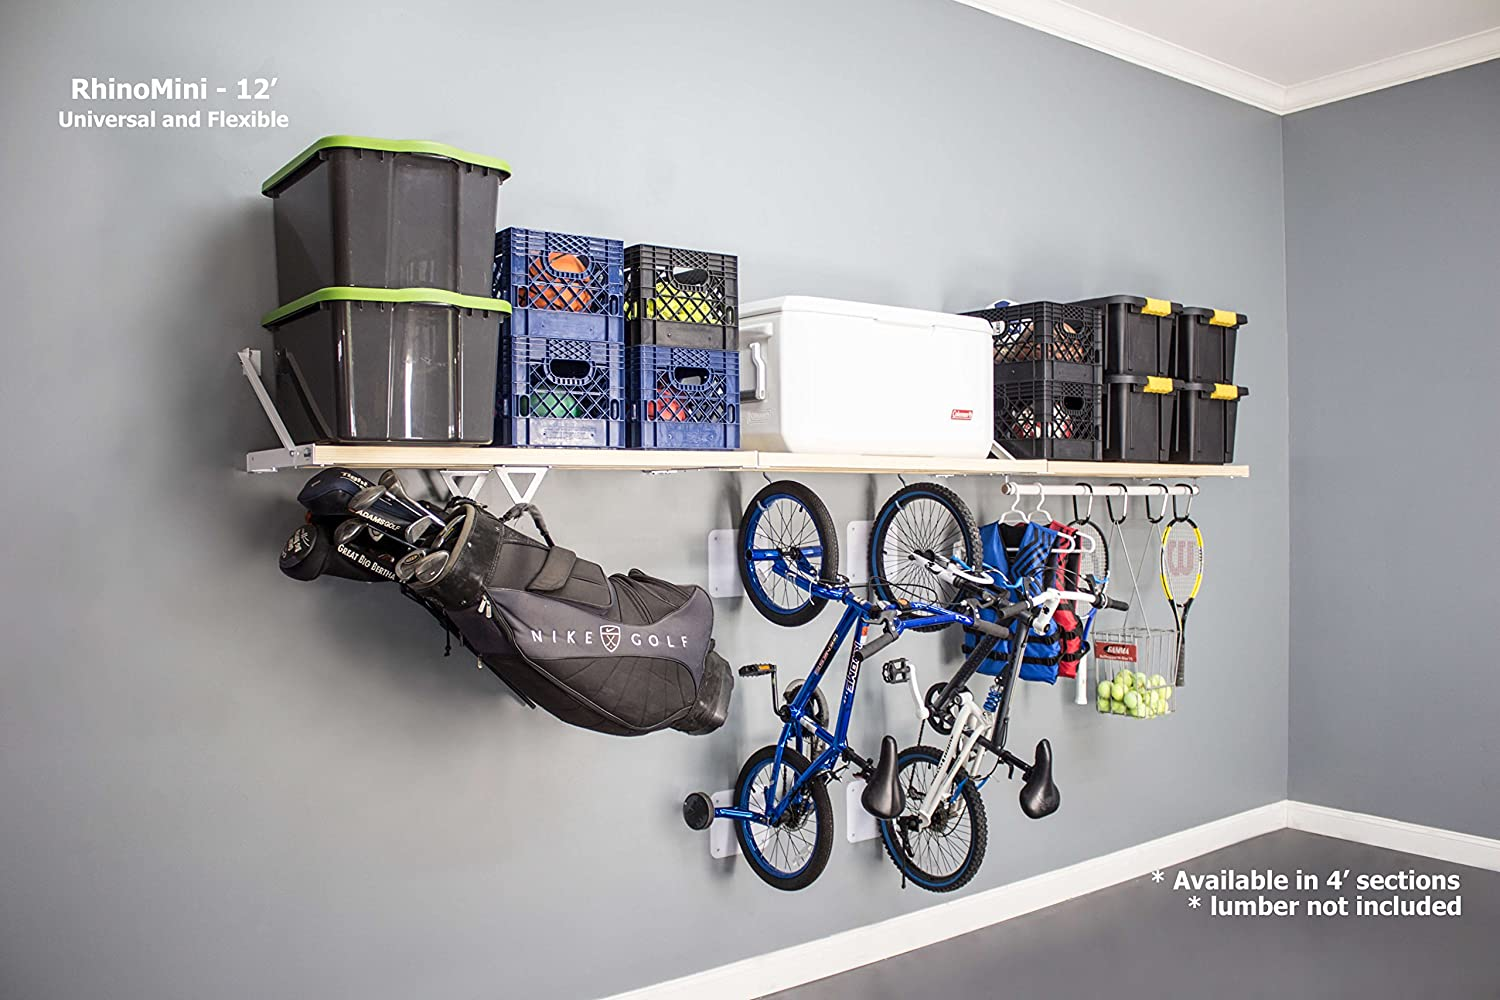 """DIY RhinoMini Universal Shelf Kits for Garages & Other Applications (12' Length; 20"""" Width)"""